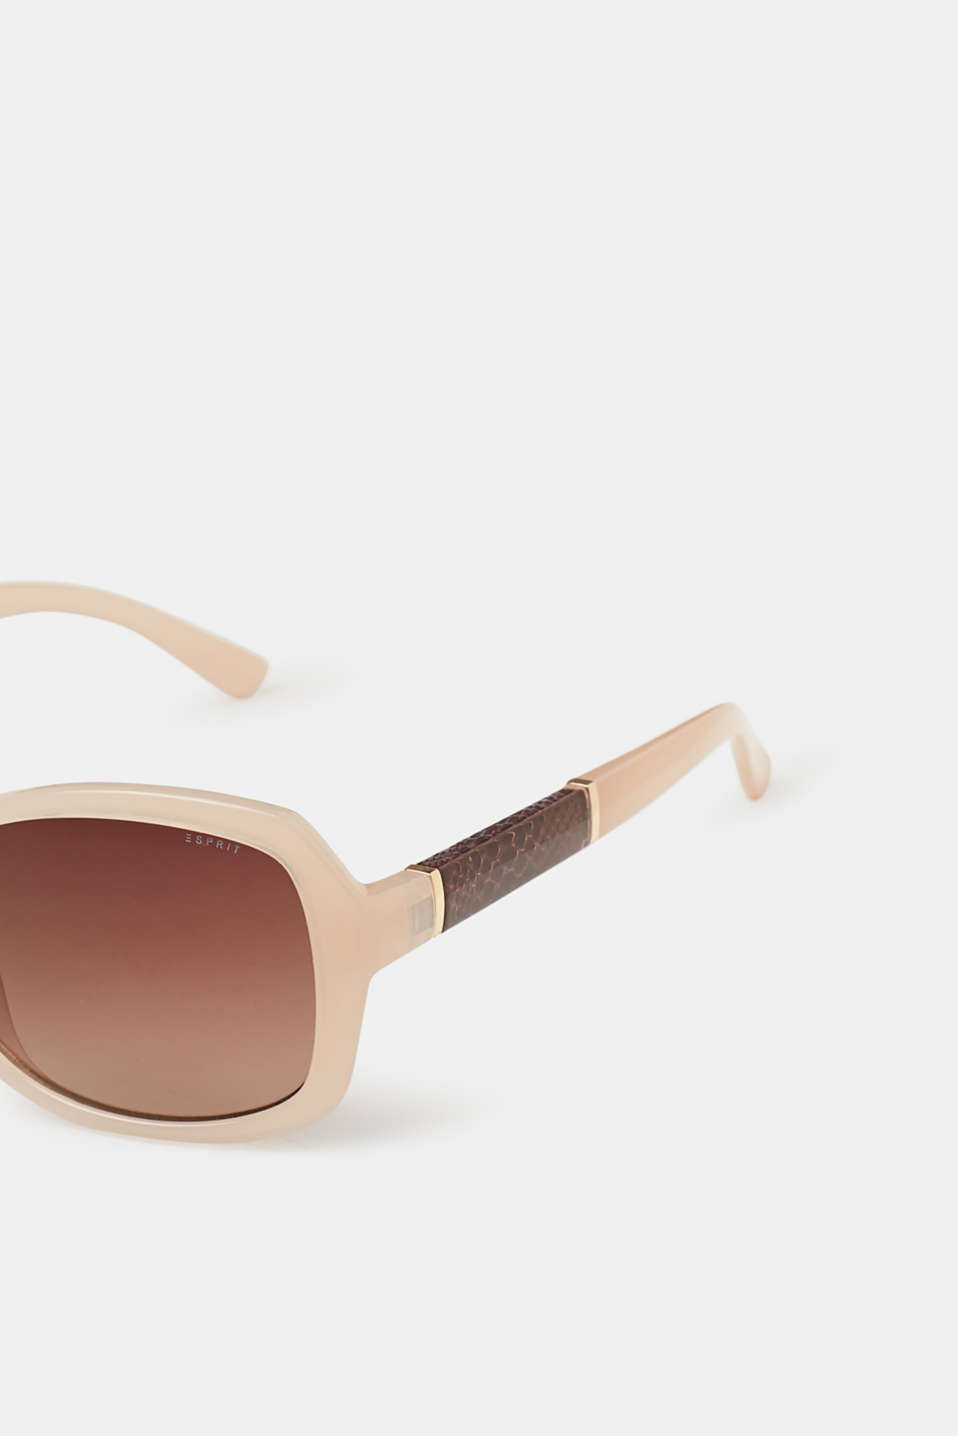 Elegant sunglasses with animal accents